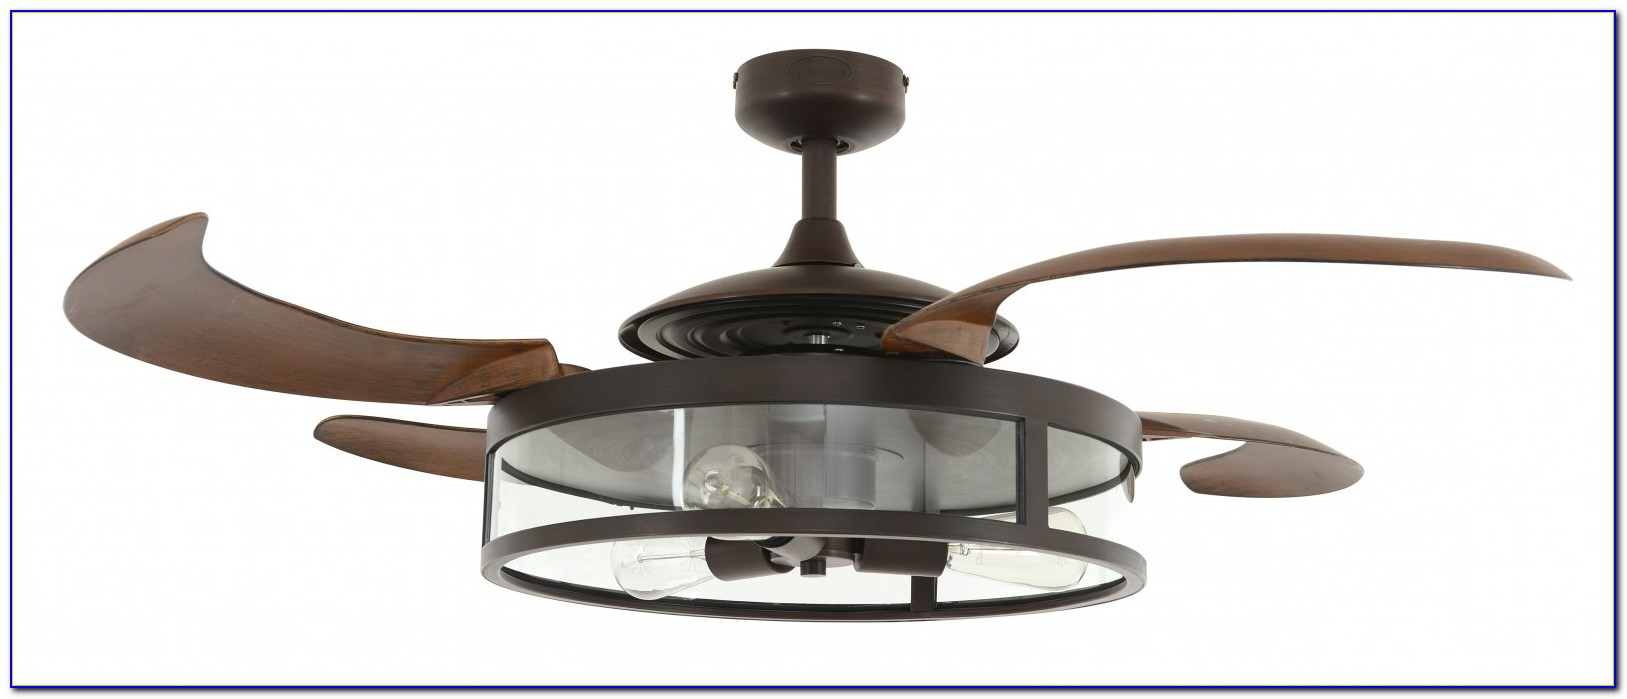 Ceiling Fan With Clear Retractable Blades And Light